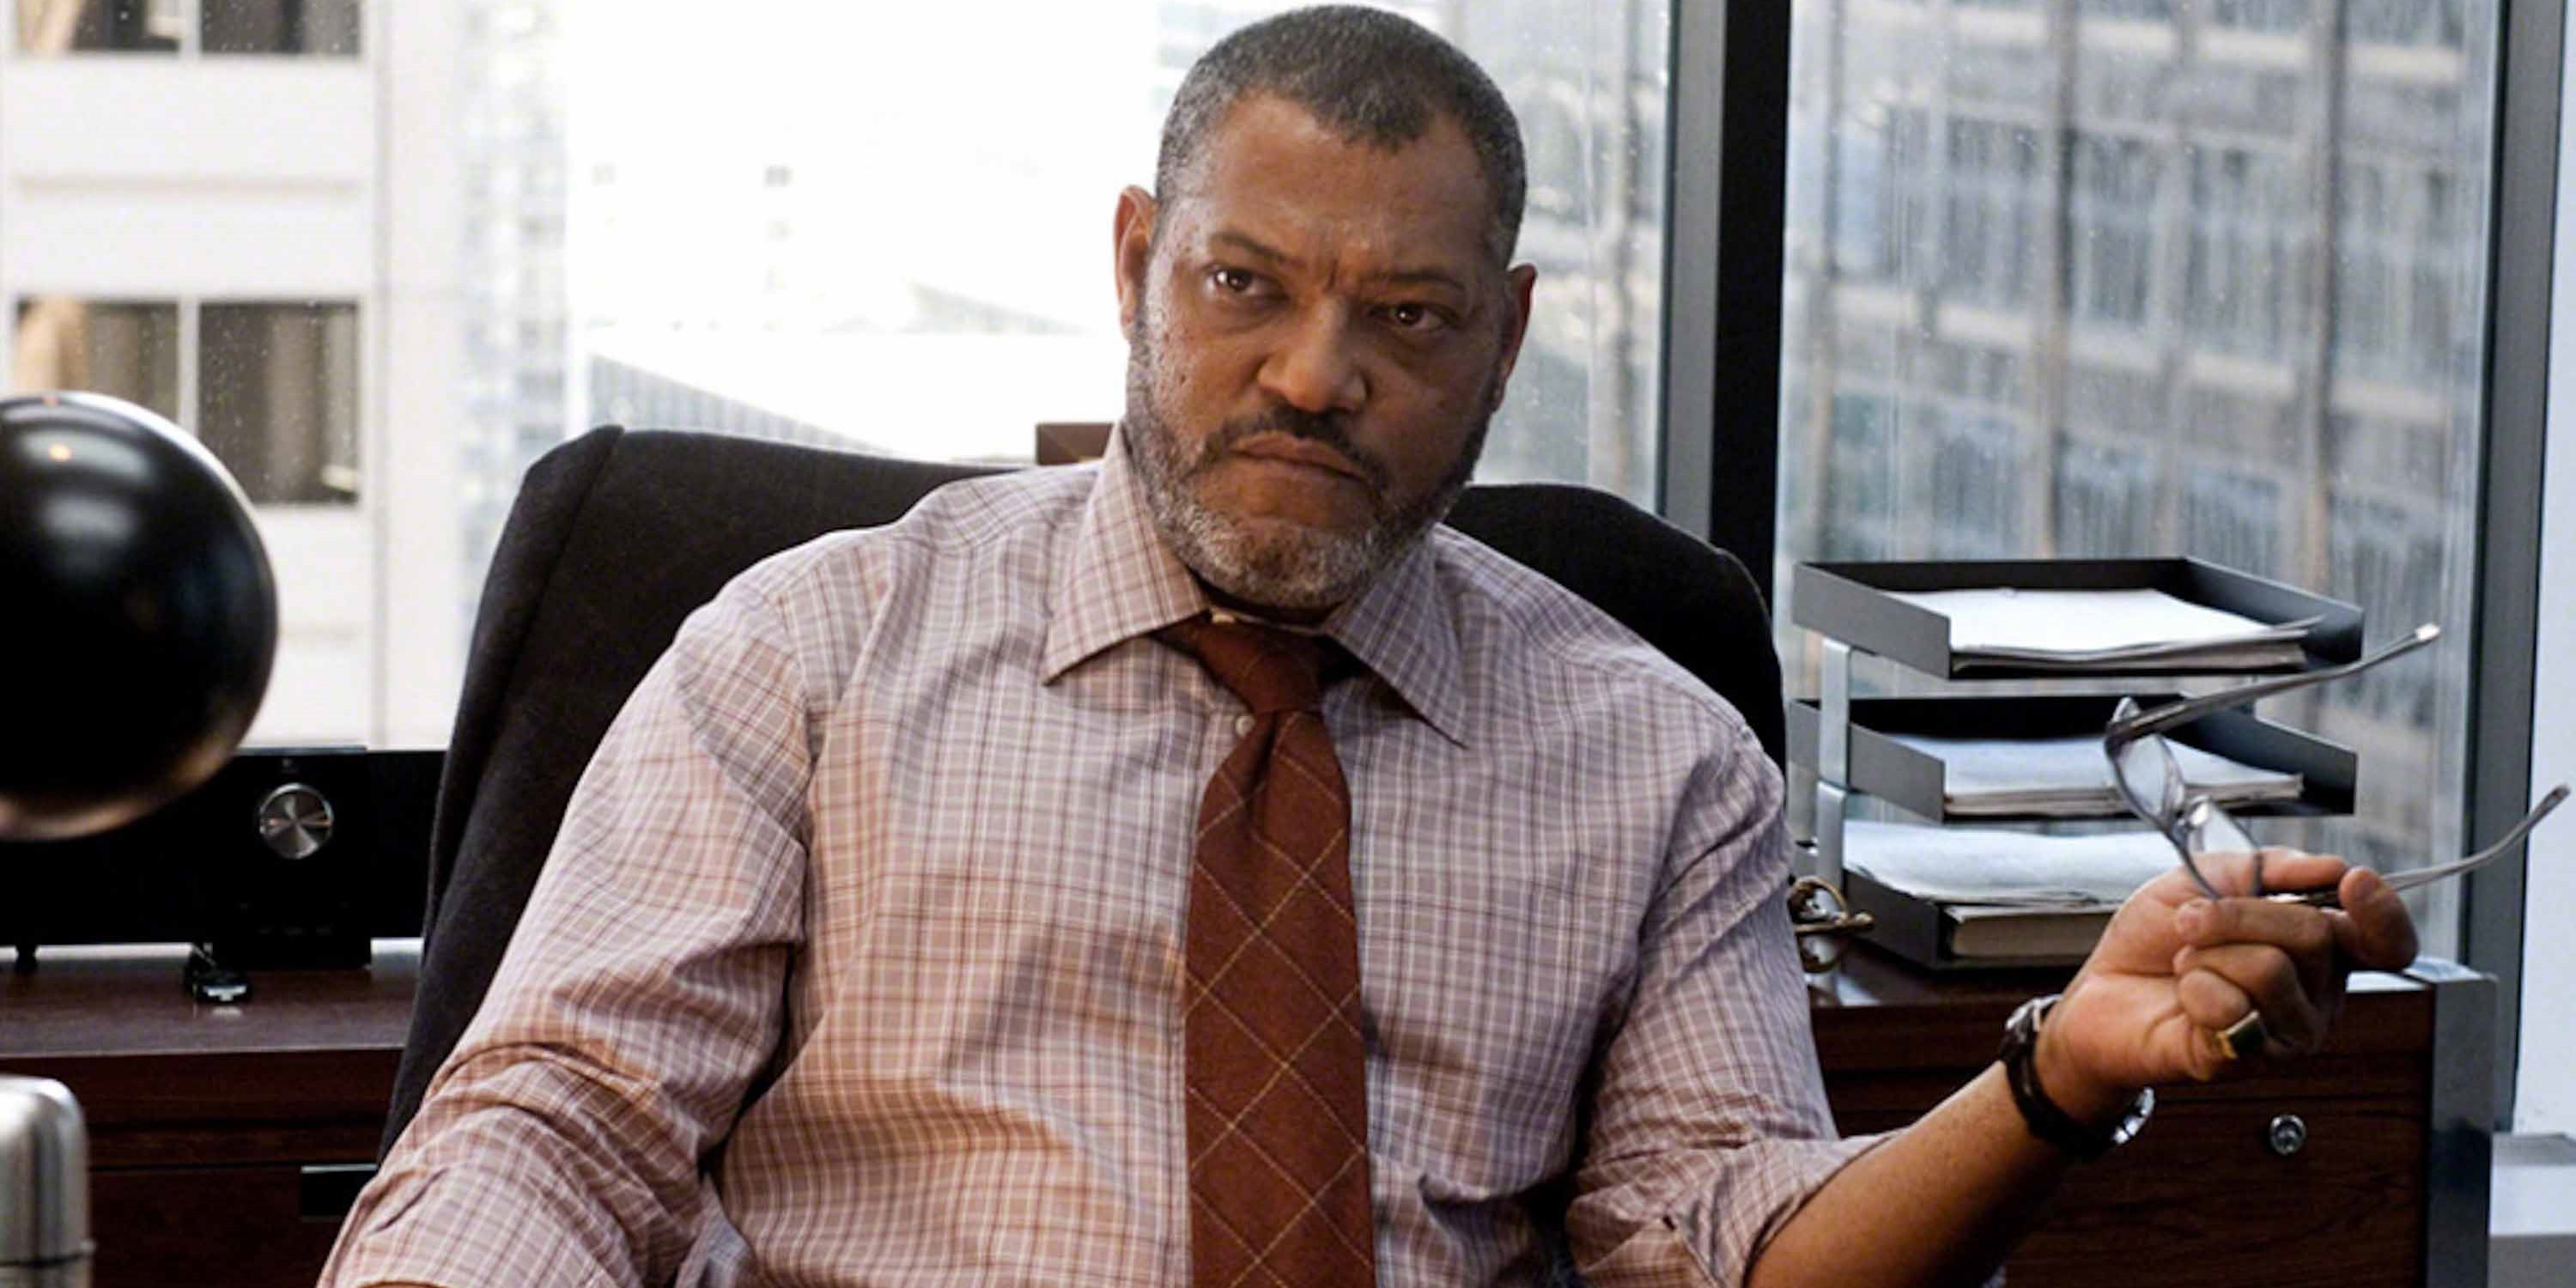 Laurence Fishburne as Perry White in Man of Steel